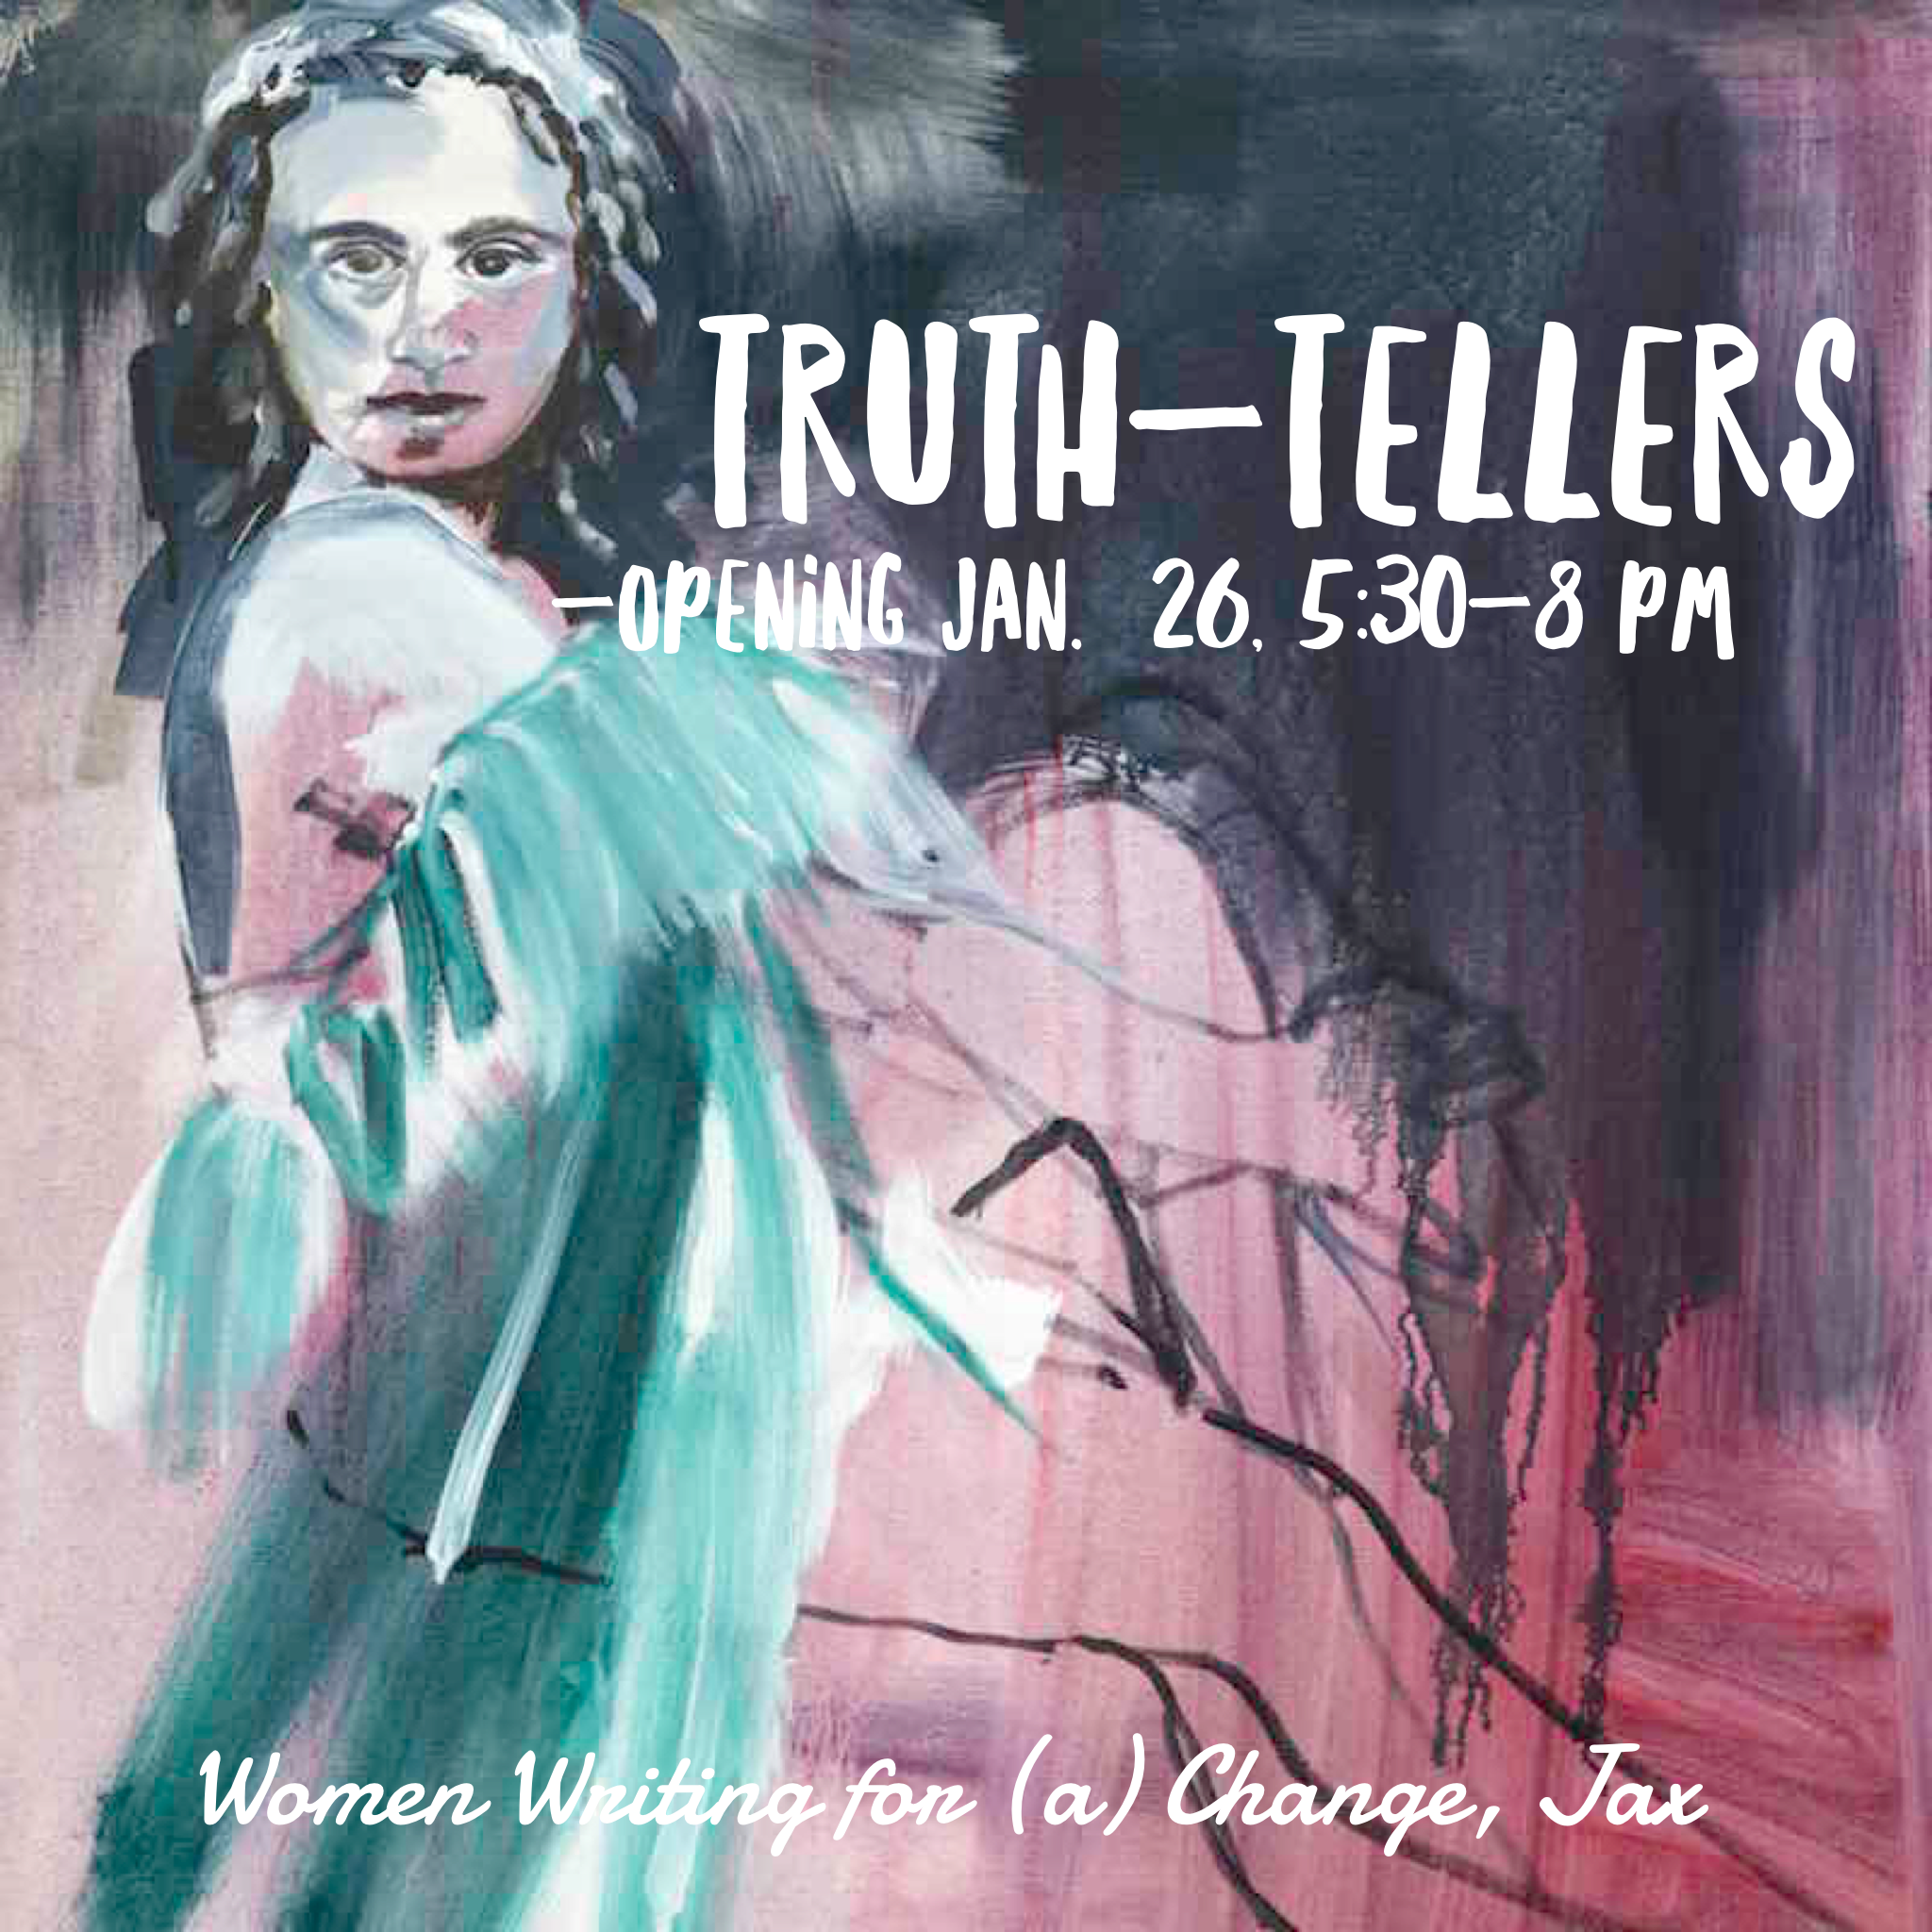 Truth-Tellers: New Art Show Highlights Women's Stories